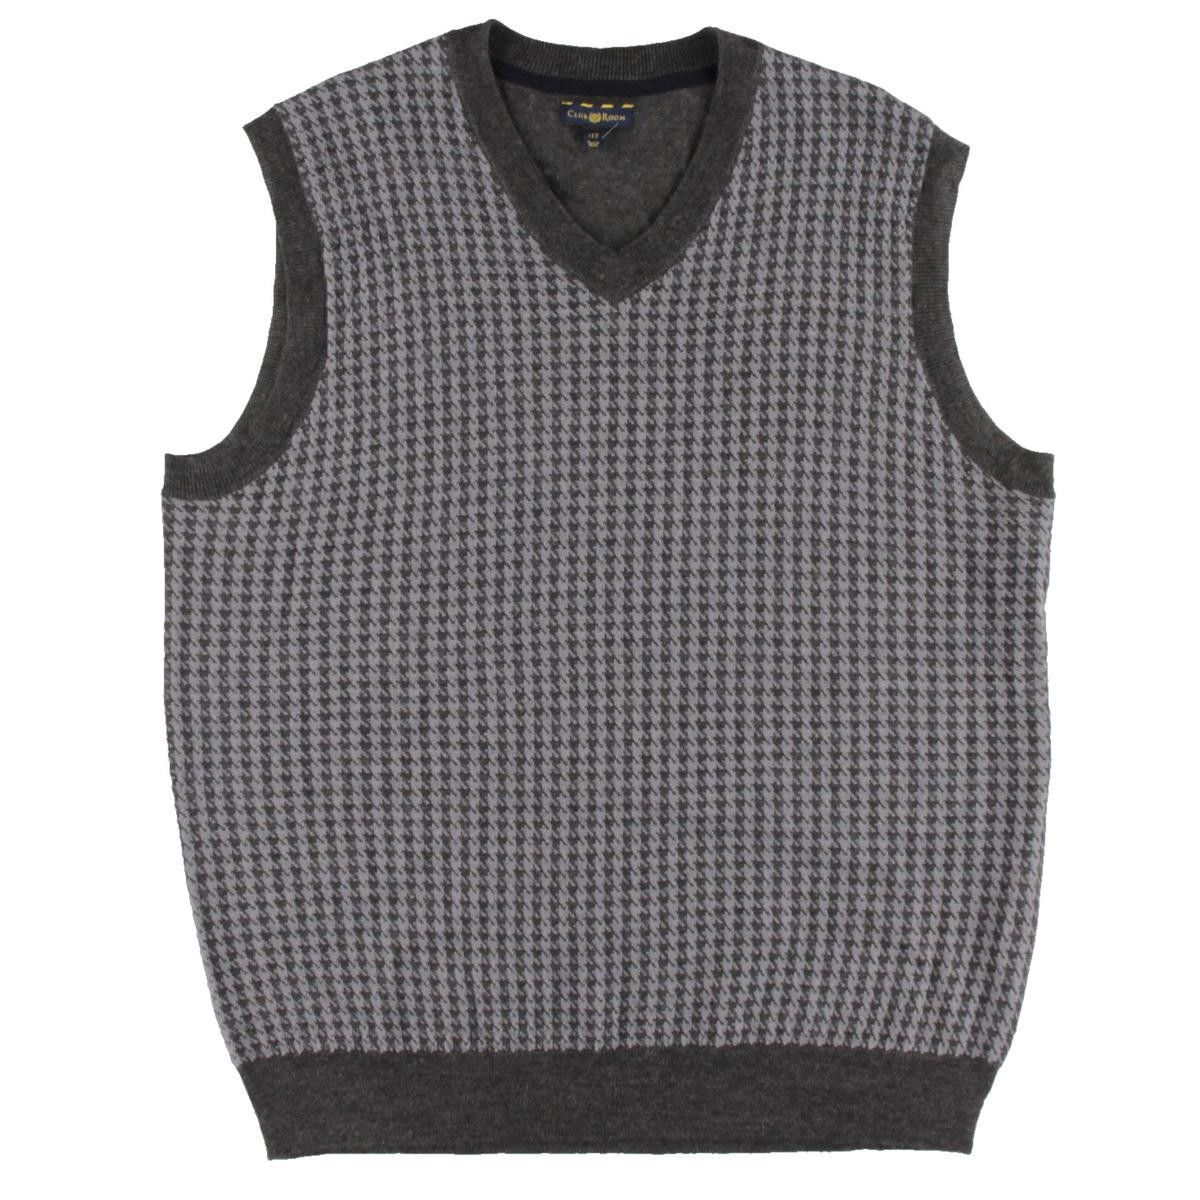 Club Room Mens Big & Tall Merino Wool Blend Houndstooth Sweater ...